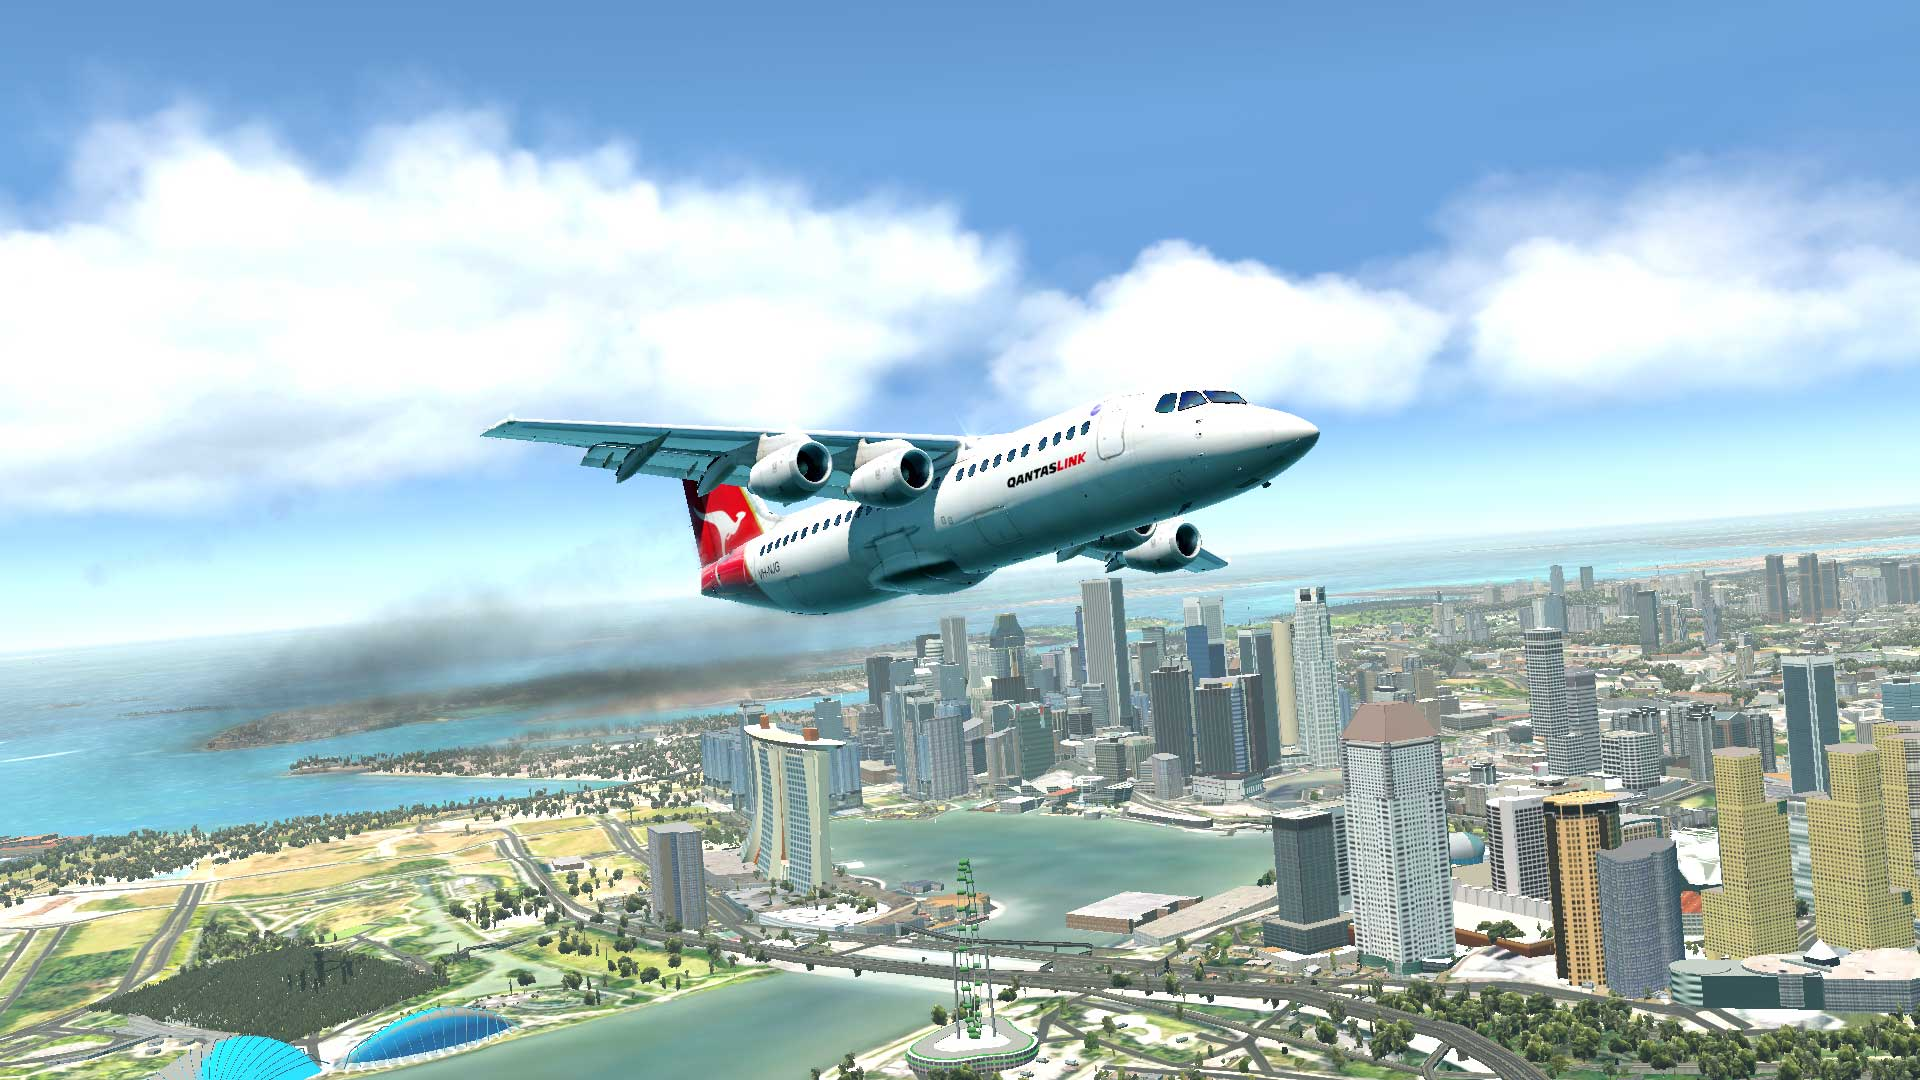 Landing in Singapore - X-Plane 11 Screenshots - X-Plane Org